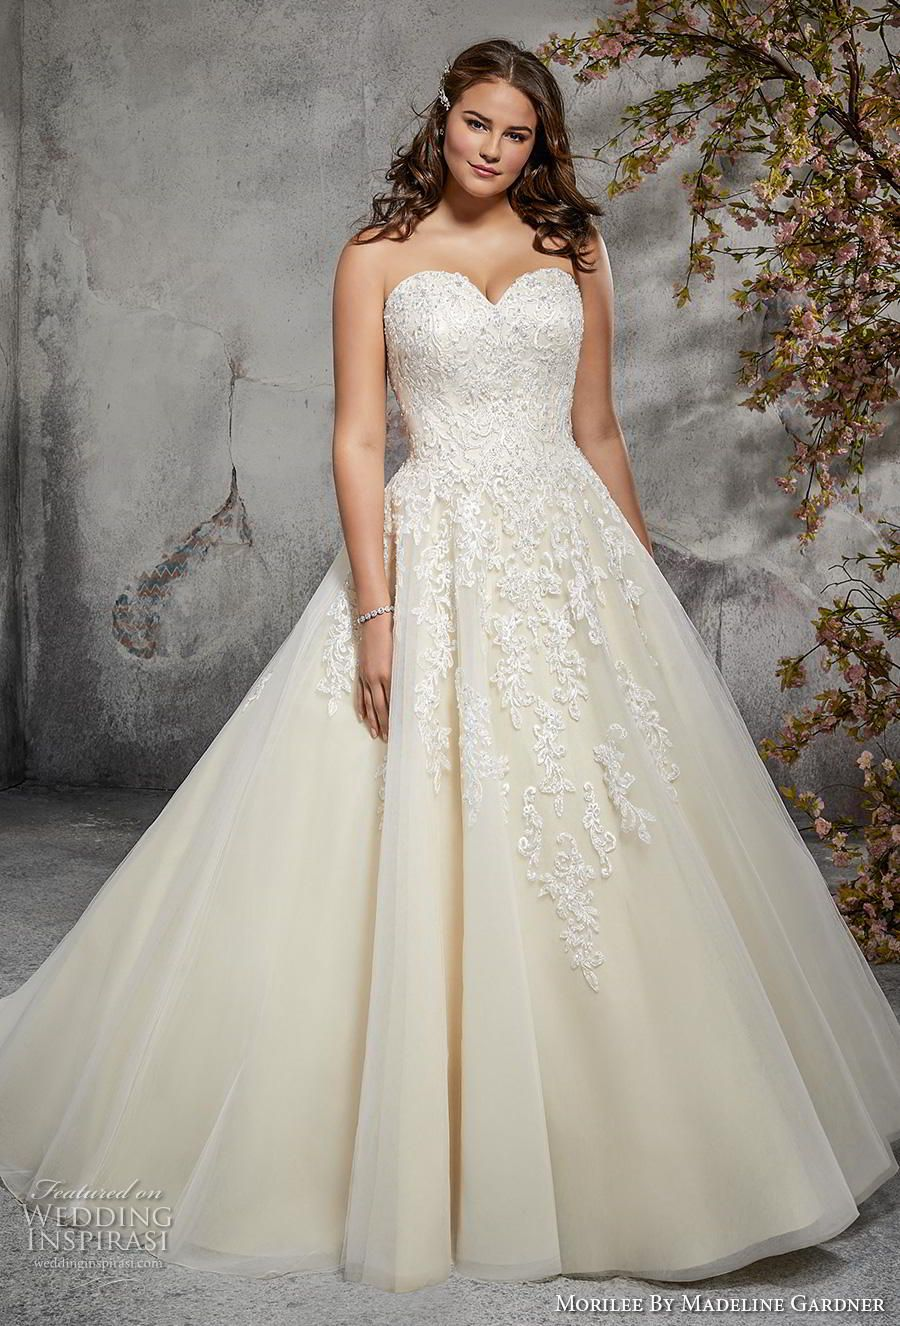 Morilee S Julietta Bridal Collection Designed To Celebrate Your Curves Wedding Inspirasi Plus Size Wedding Gowns Wedding Dresses Strapless Ball Gowns Wedding [ 1326 x 900 Pixel ]